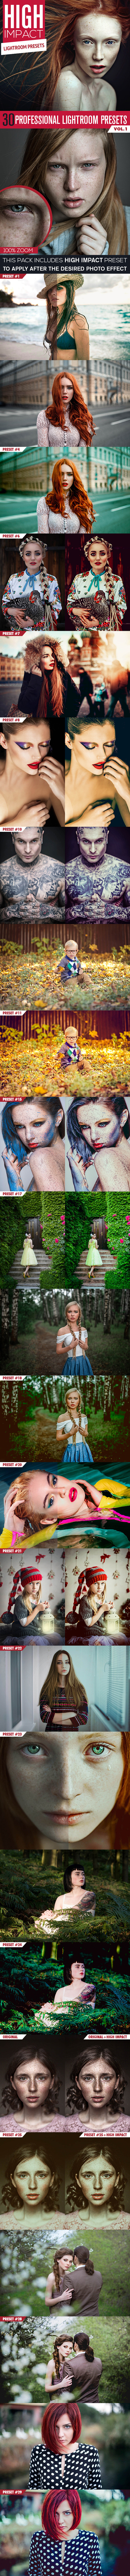 30 High Impact Lightroom Presets Vol.1  - Portrait Lightroom Presets